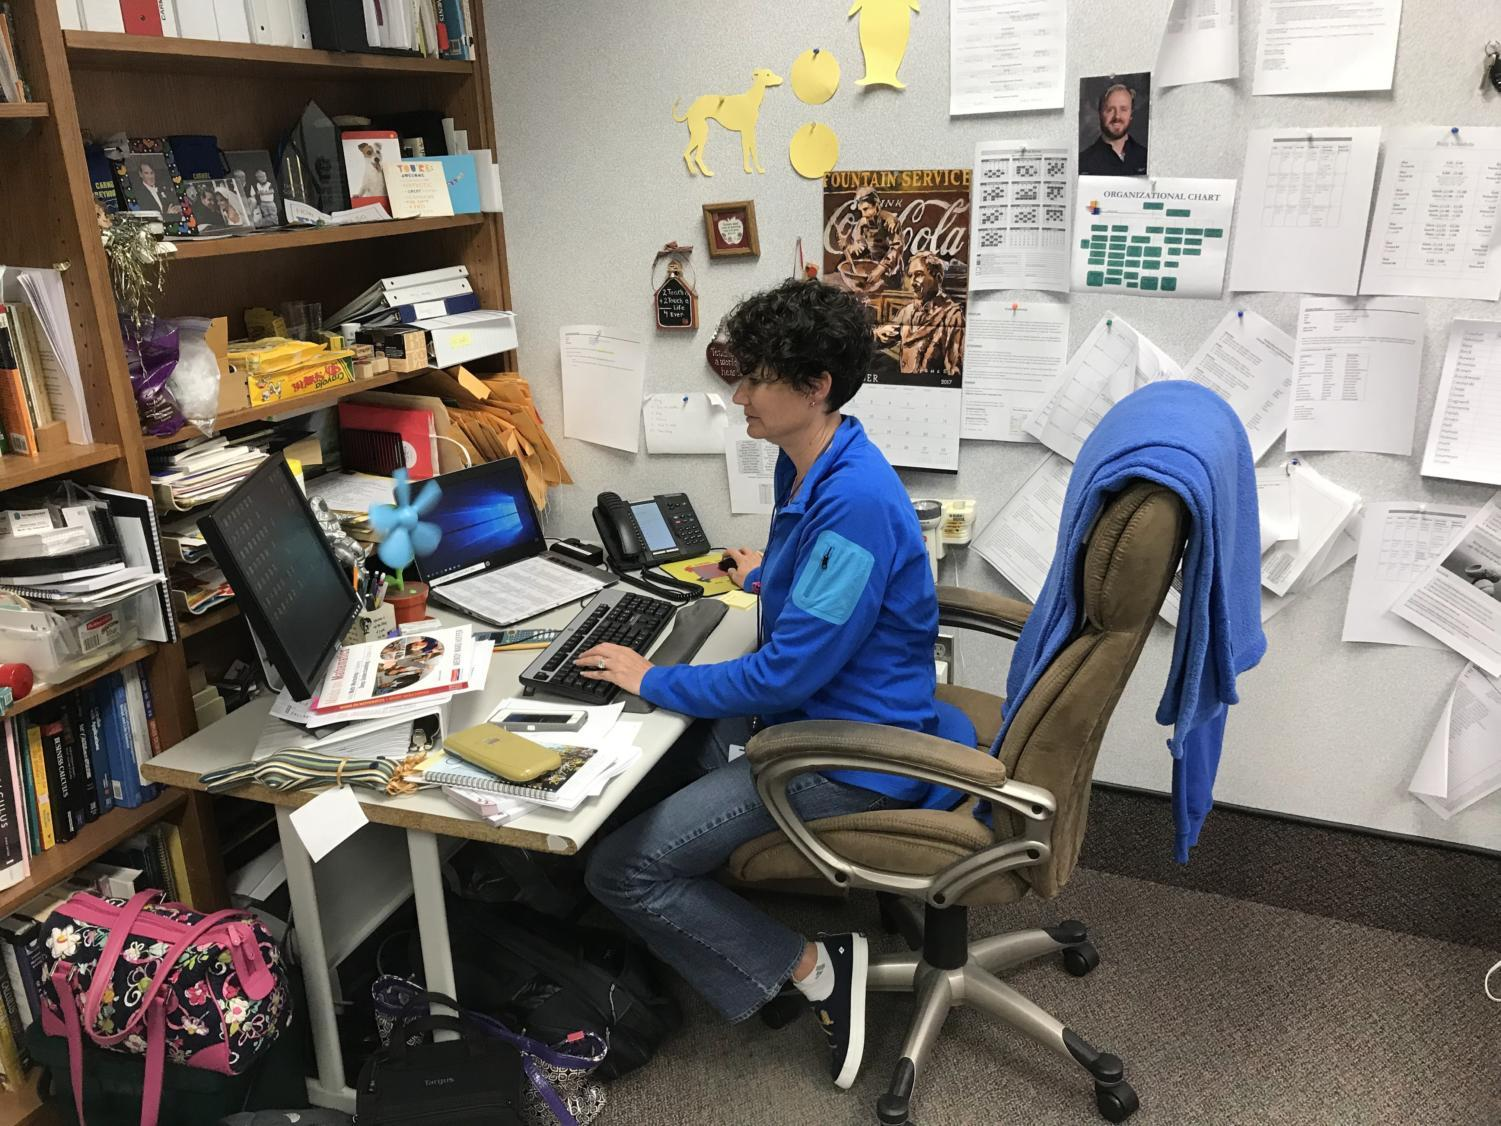 Math department chair Jacinda Sohalski quietly works at her desk. For the past few weeks, she has been working actively to help students with ISTEP remediation.